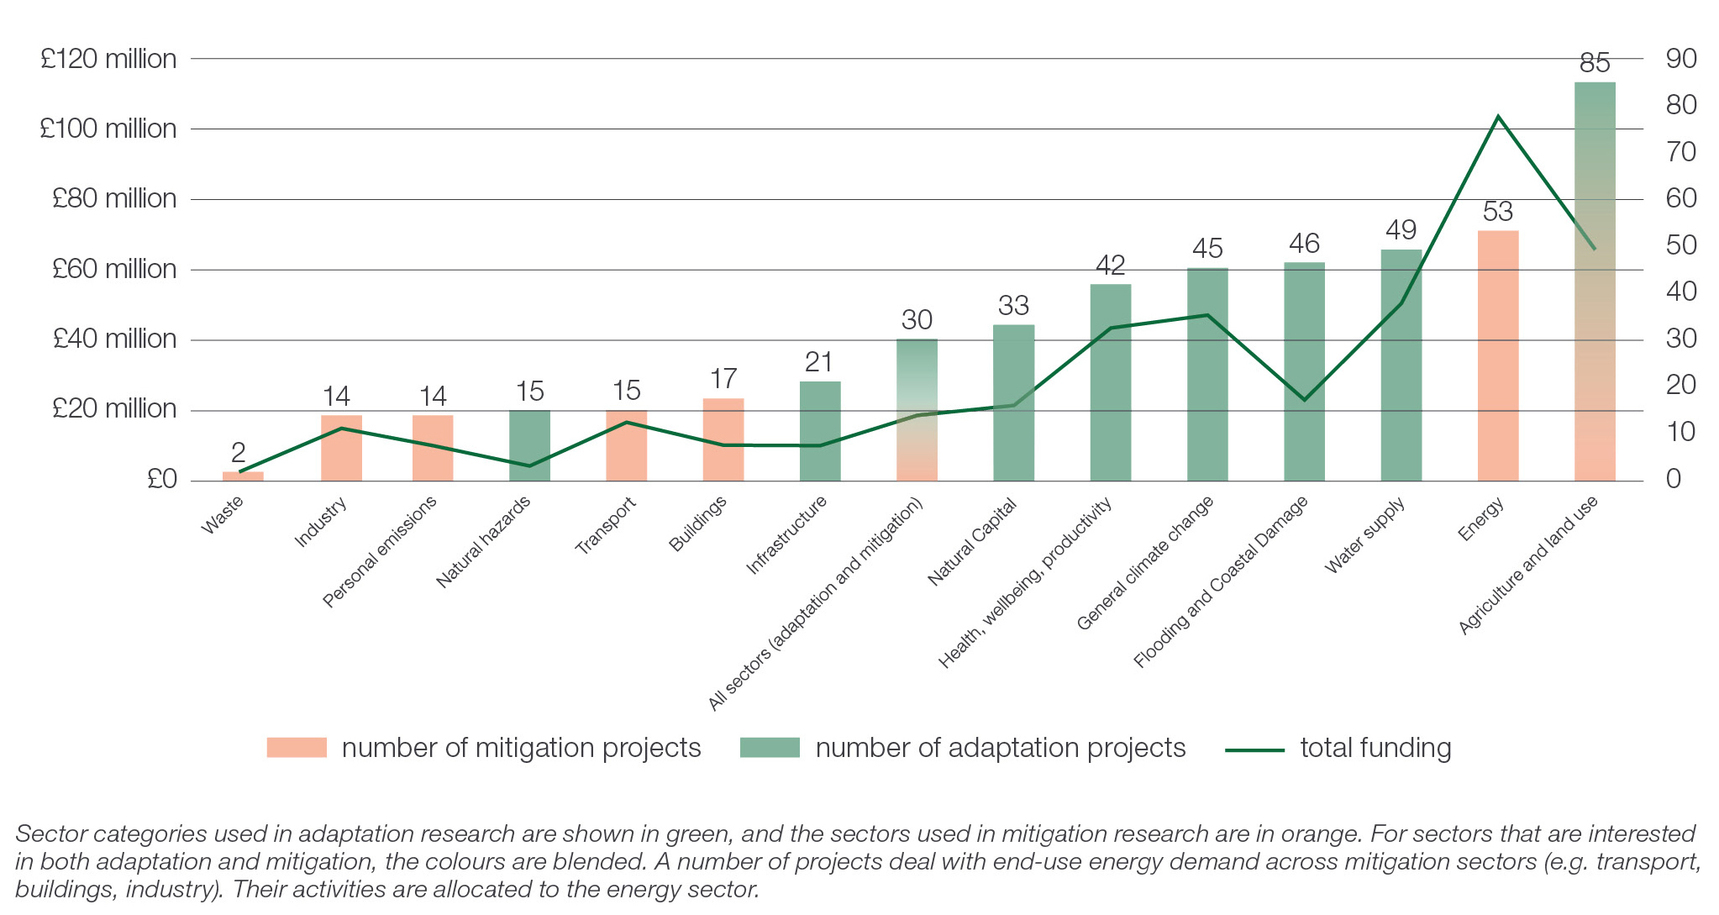 This graph shows UK social science research on climate change by sector by number of projects and amount of funding